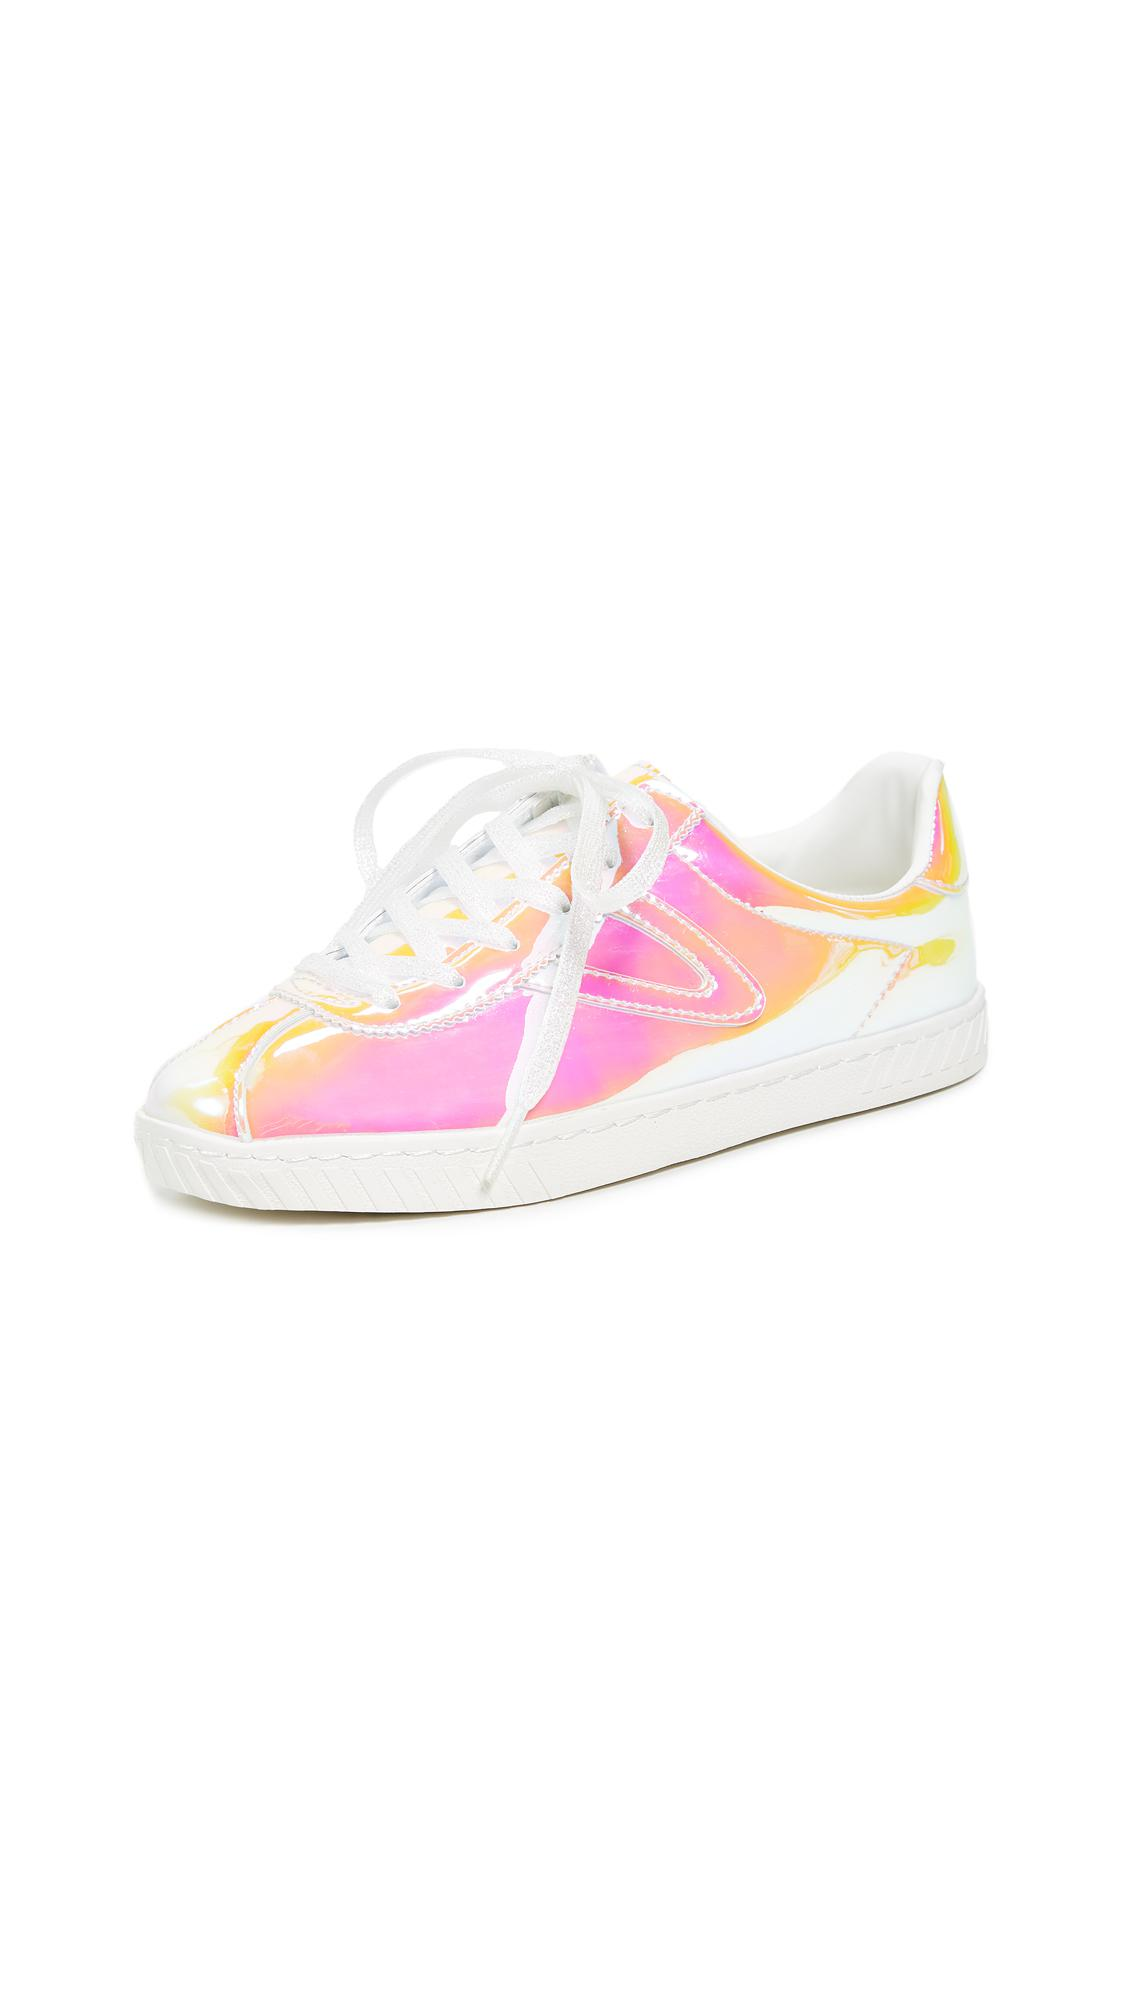 Tretorn Women's Camden Iridescent Lace Up Sneakers Cheap Sale From China In China Cheap Price Outlet Get Authentic NQpoem